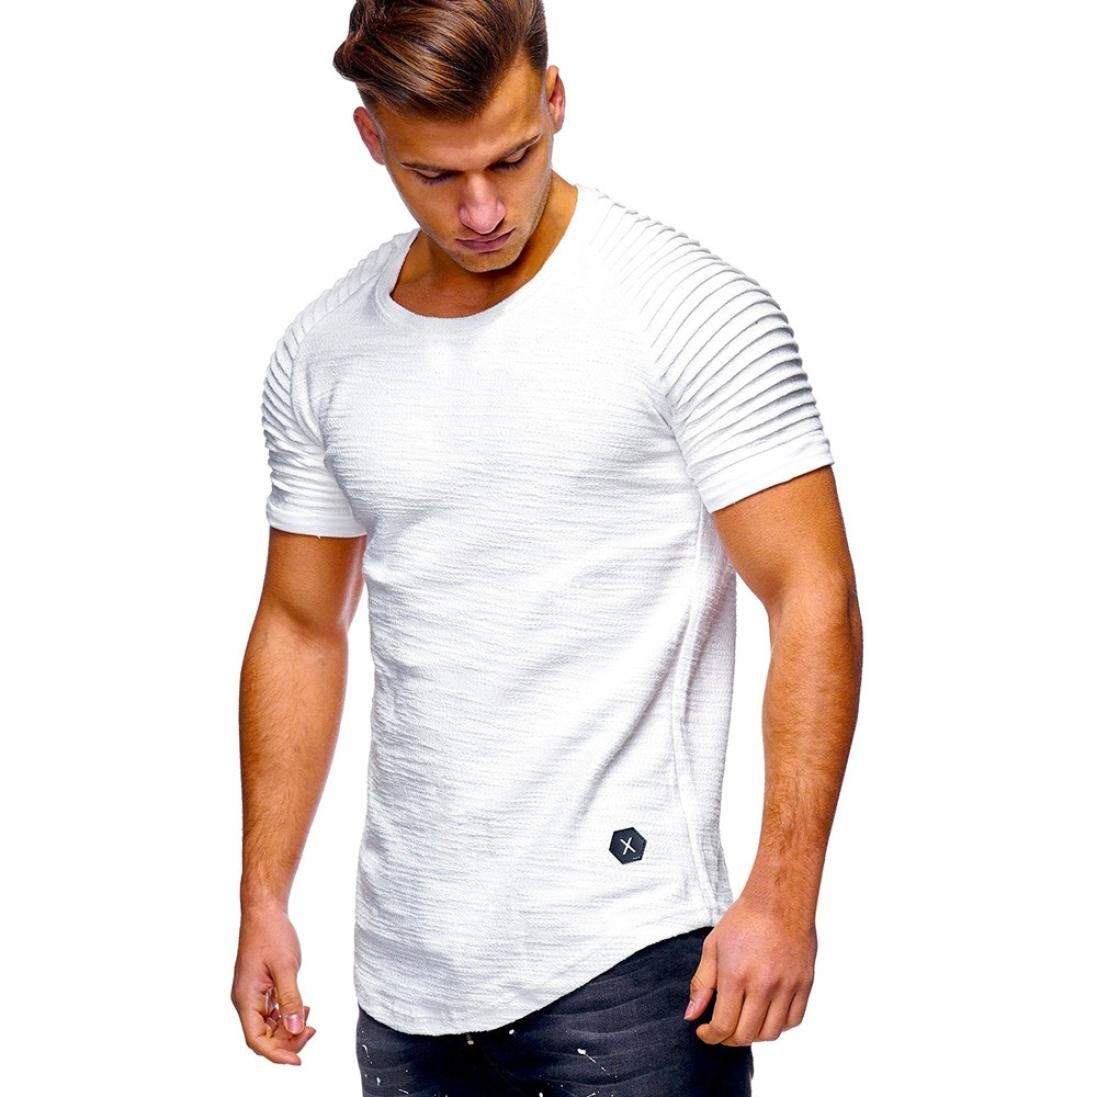 Camisa t-Shirt tee Tops Blusa Polos Hombre Personalizada Casual ...